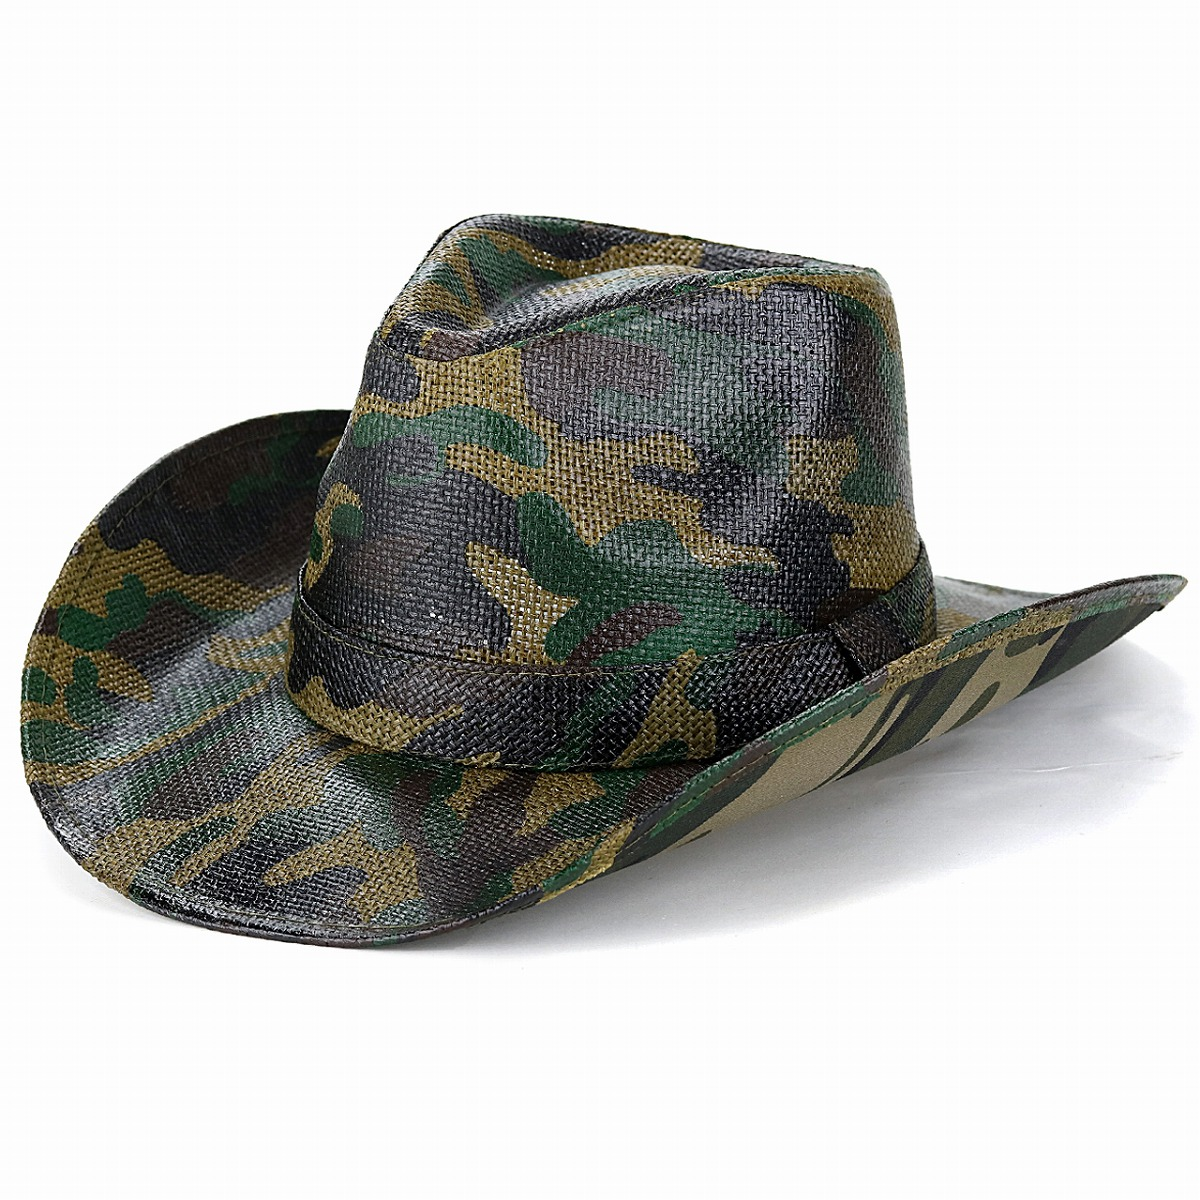 Ten-gallon hat camouflage pattern California hat hat men cowboy hat  camouflage import Lady s western hat United States California Hat Company  Inc. awning ... 9d057961434